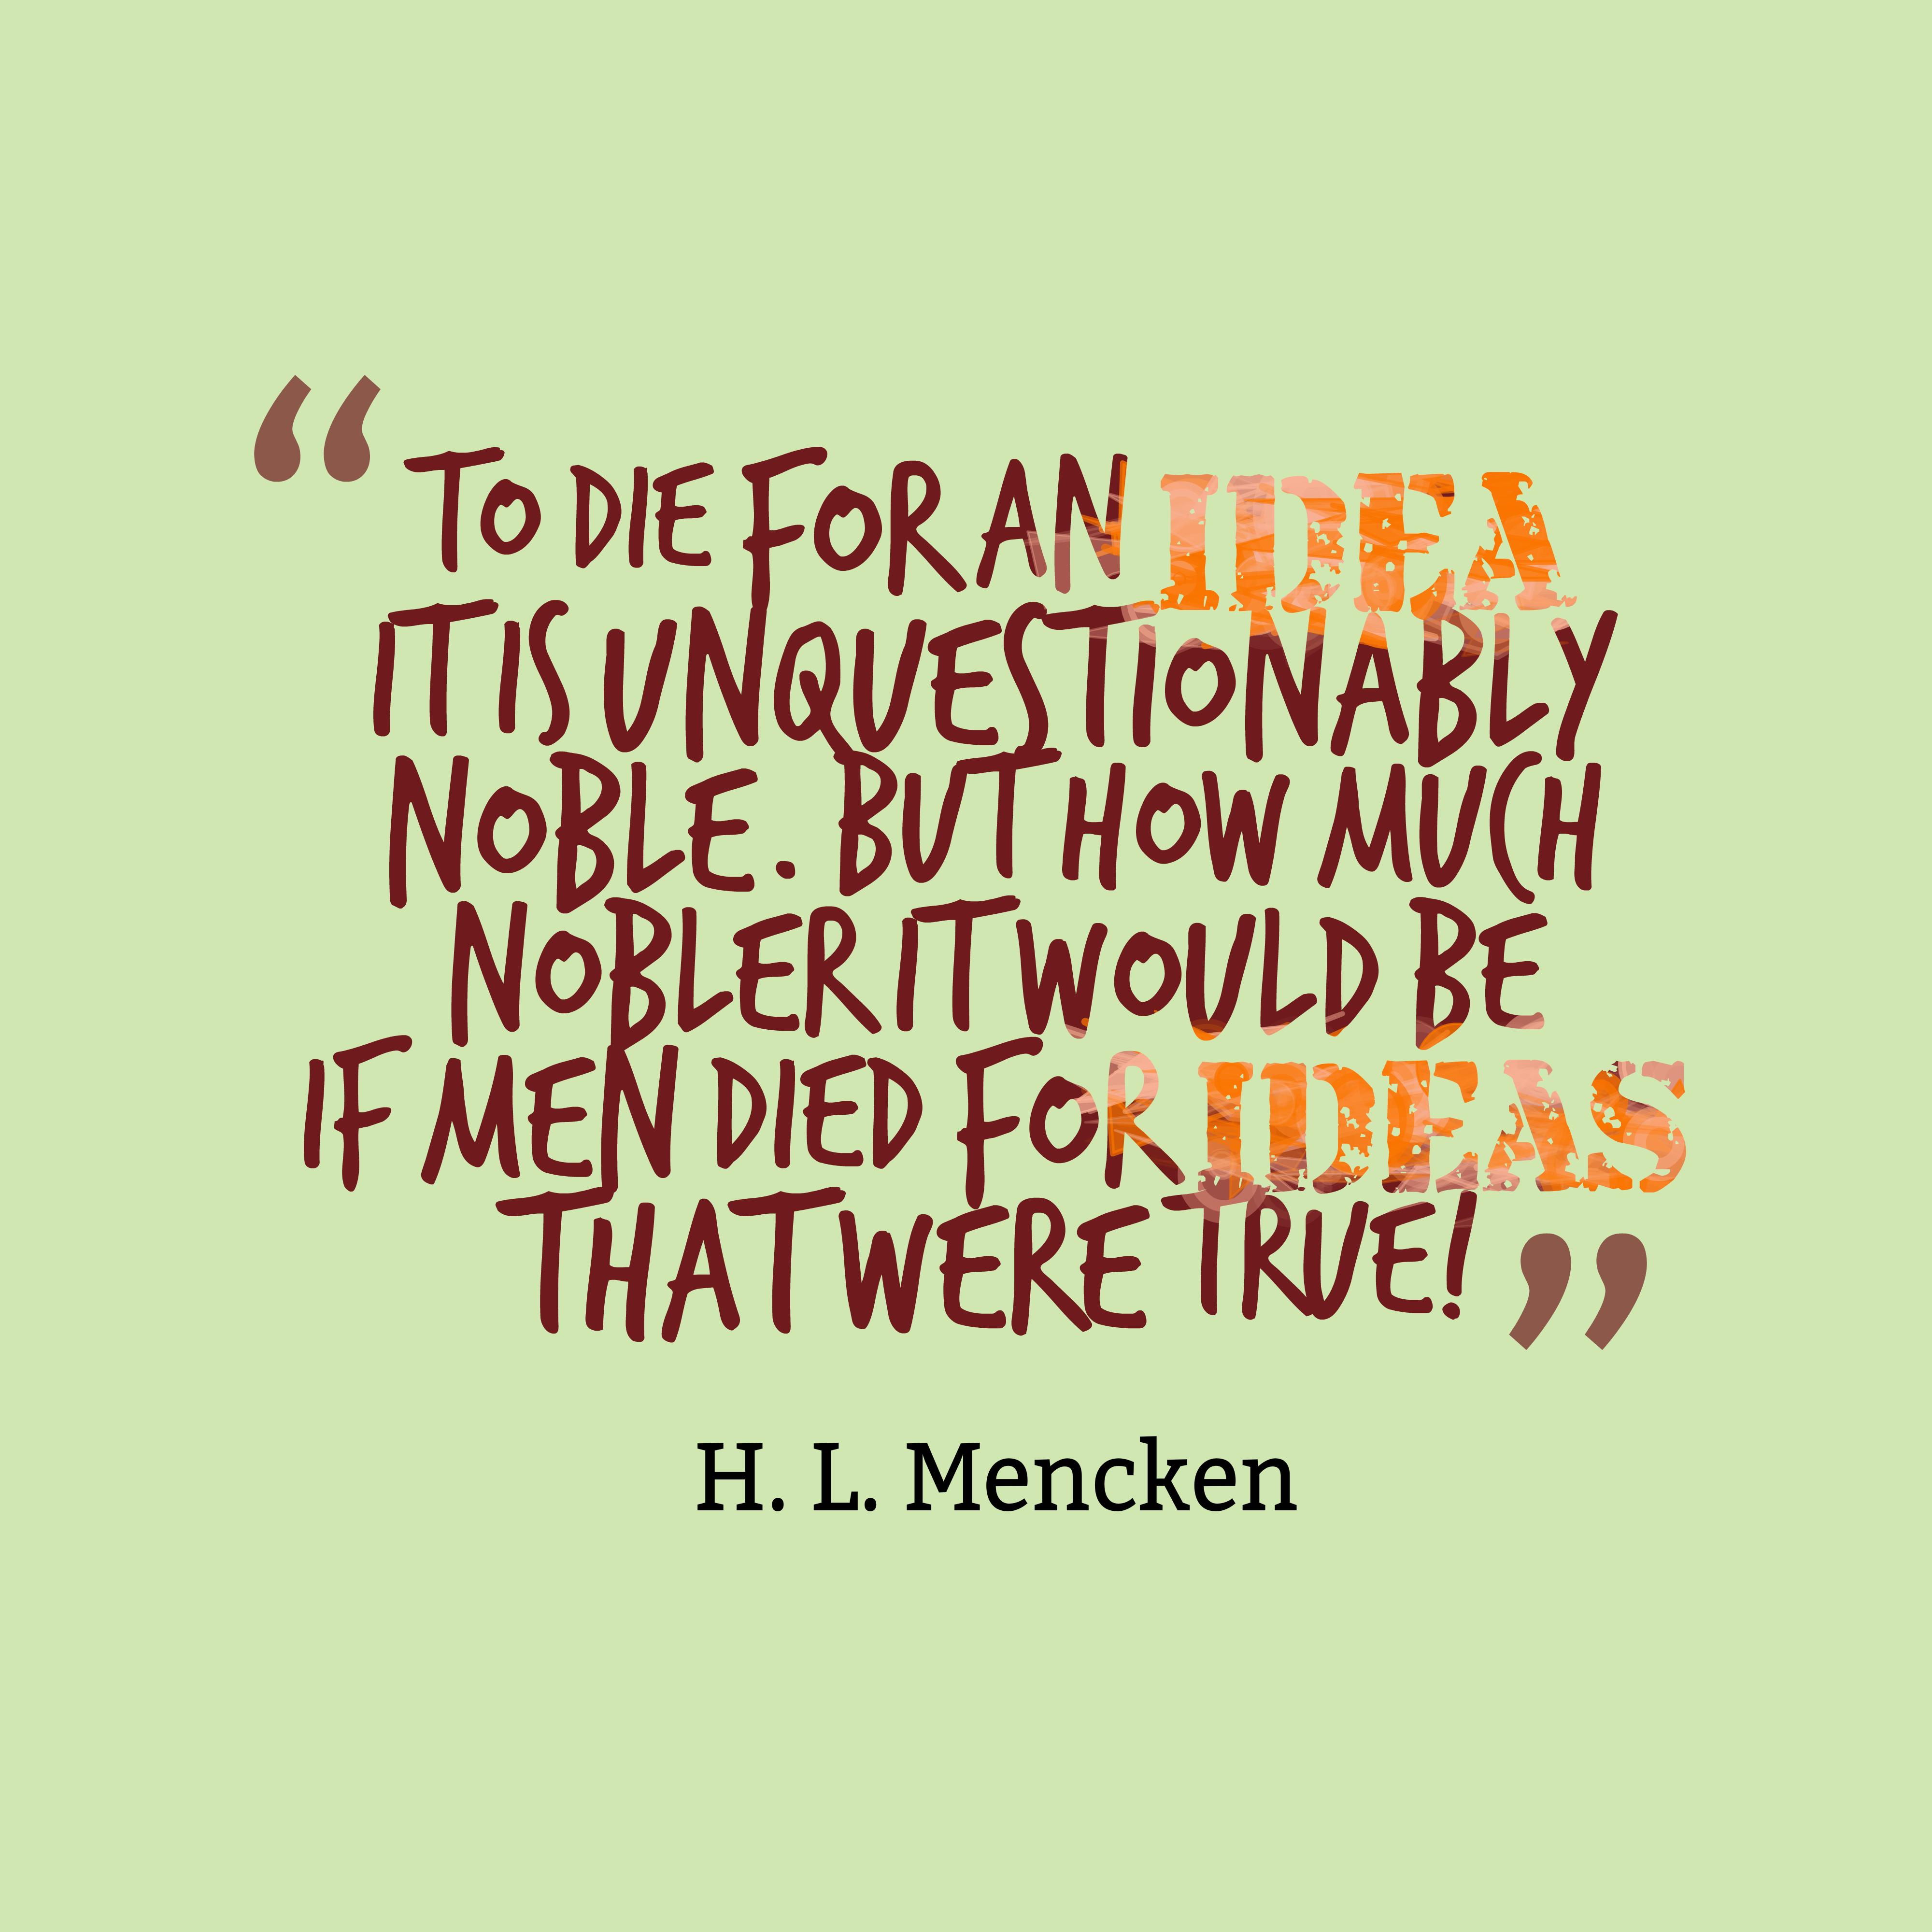 Quotes image of To die for an idea; it is unquestionably noble. But how much nobler it would be if men died for ideas that were true!